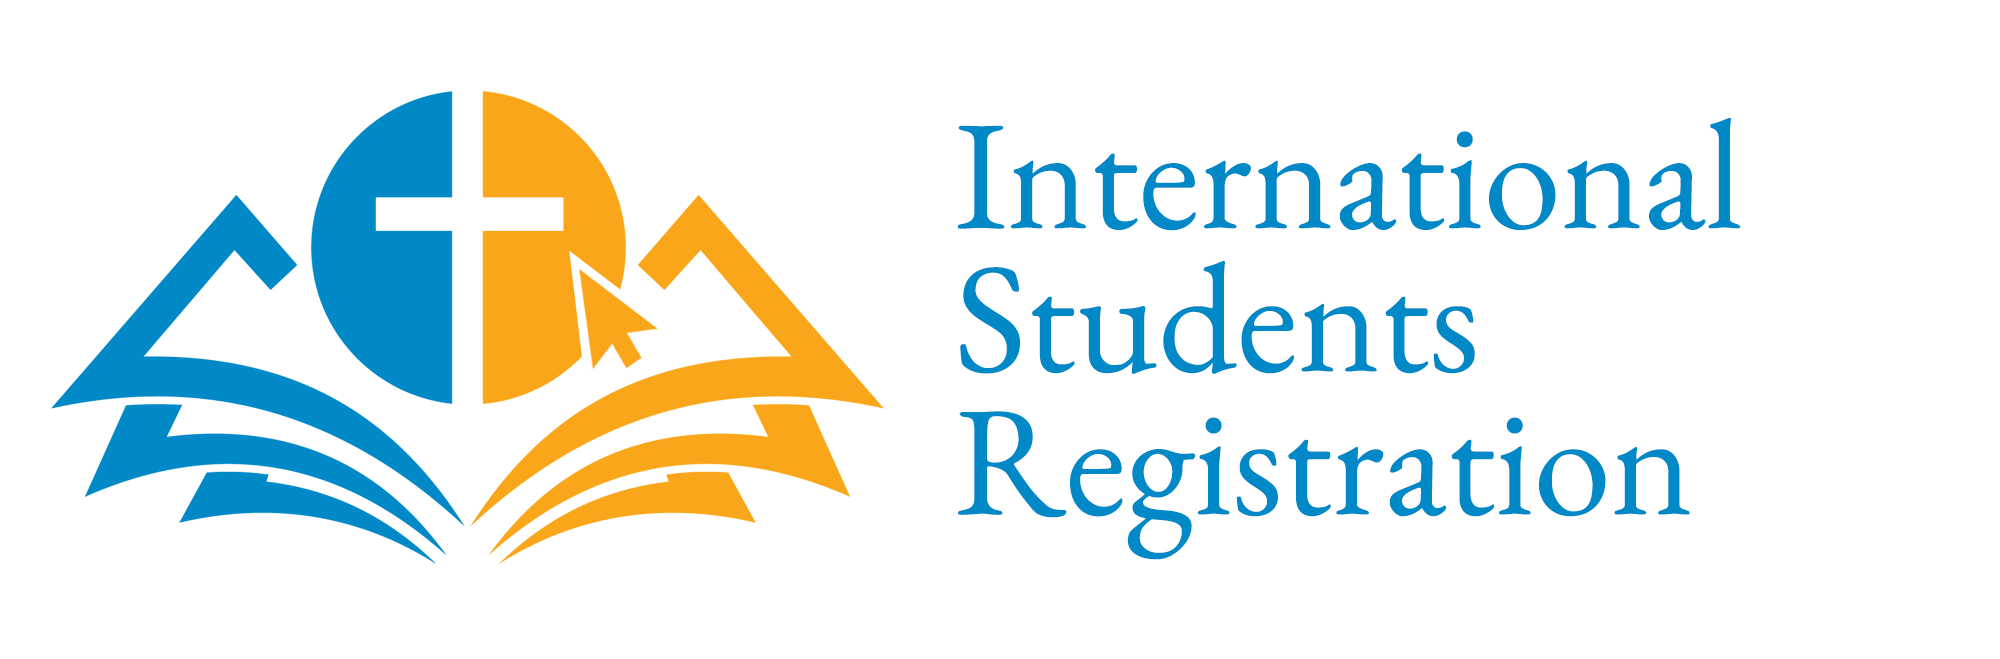 International Student Registration